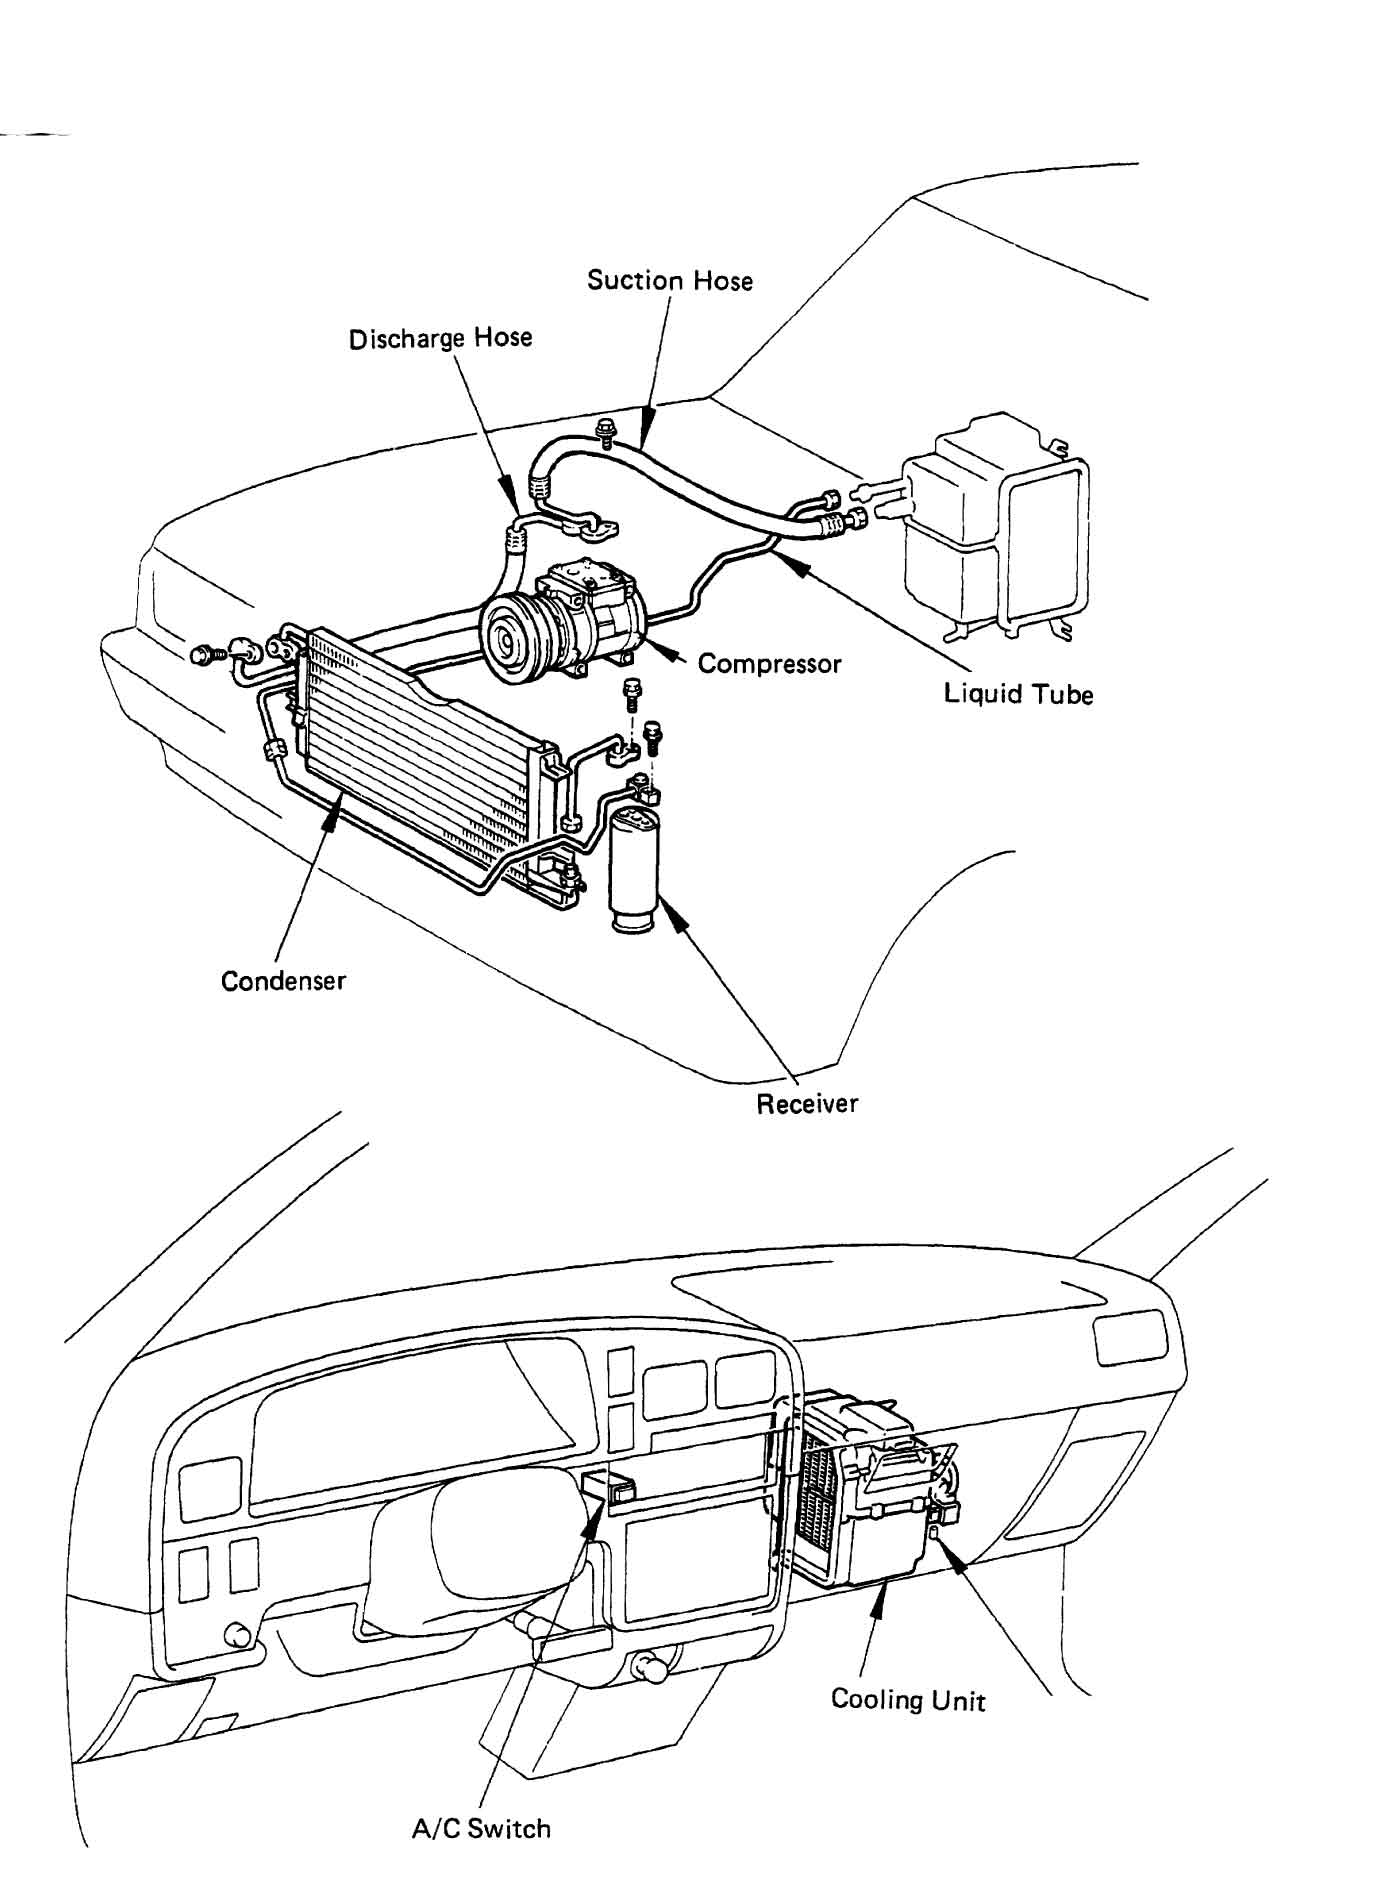 4ac Wiring Diagram additionally T26275475 Body diagram toyota corolla furthermore 22re Engine Wiring Harness as well 96 Toyota Ta a Knock Sensor Location furthermore 356ck 93 Toyota Runner Need Diagram Vacuum. on 22re coolant temperature sensor